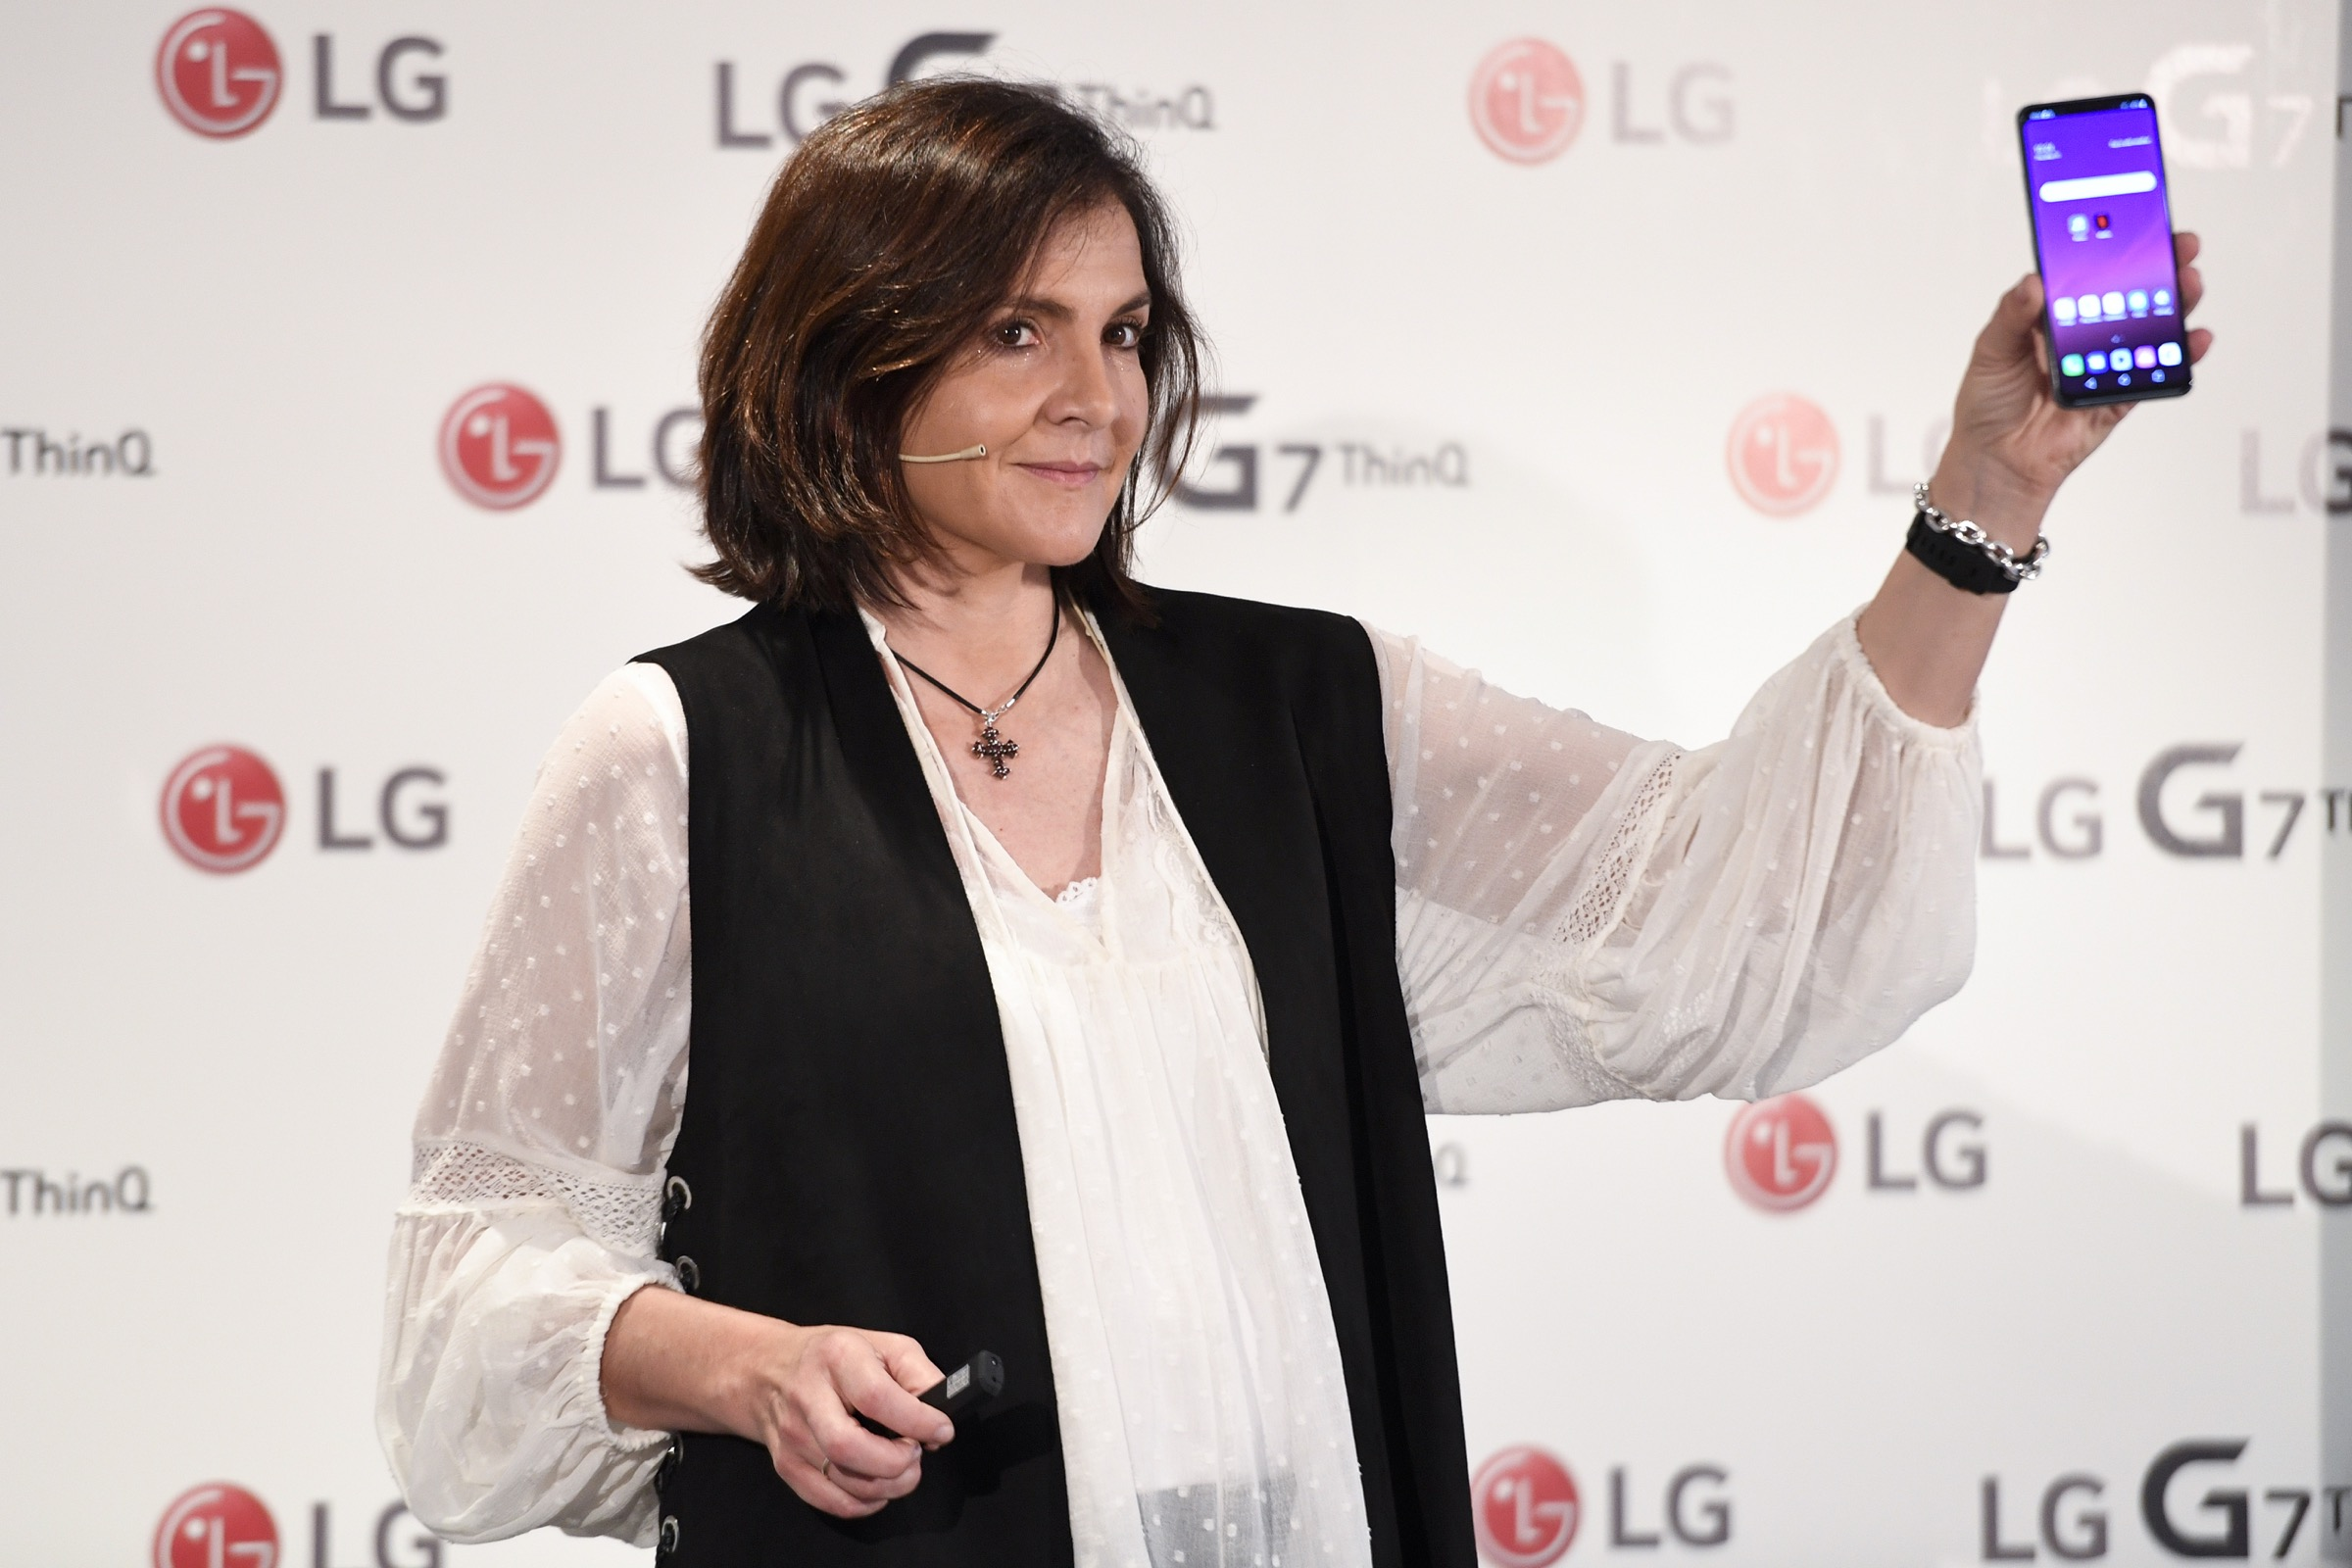 Liliana Bolós, Directora de Marketing de MC en LG España